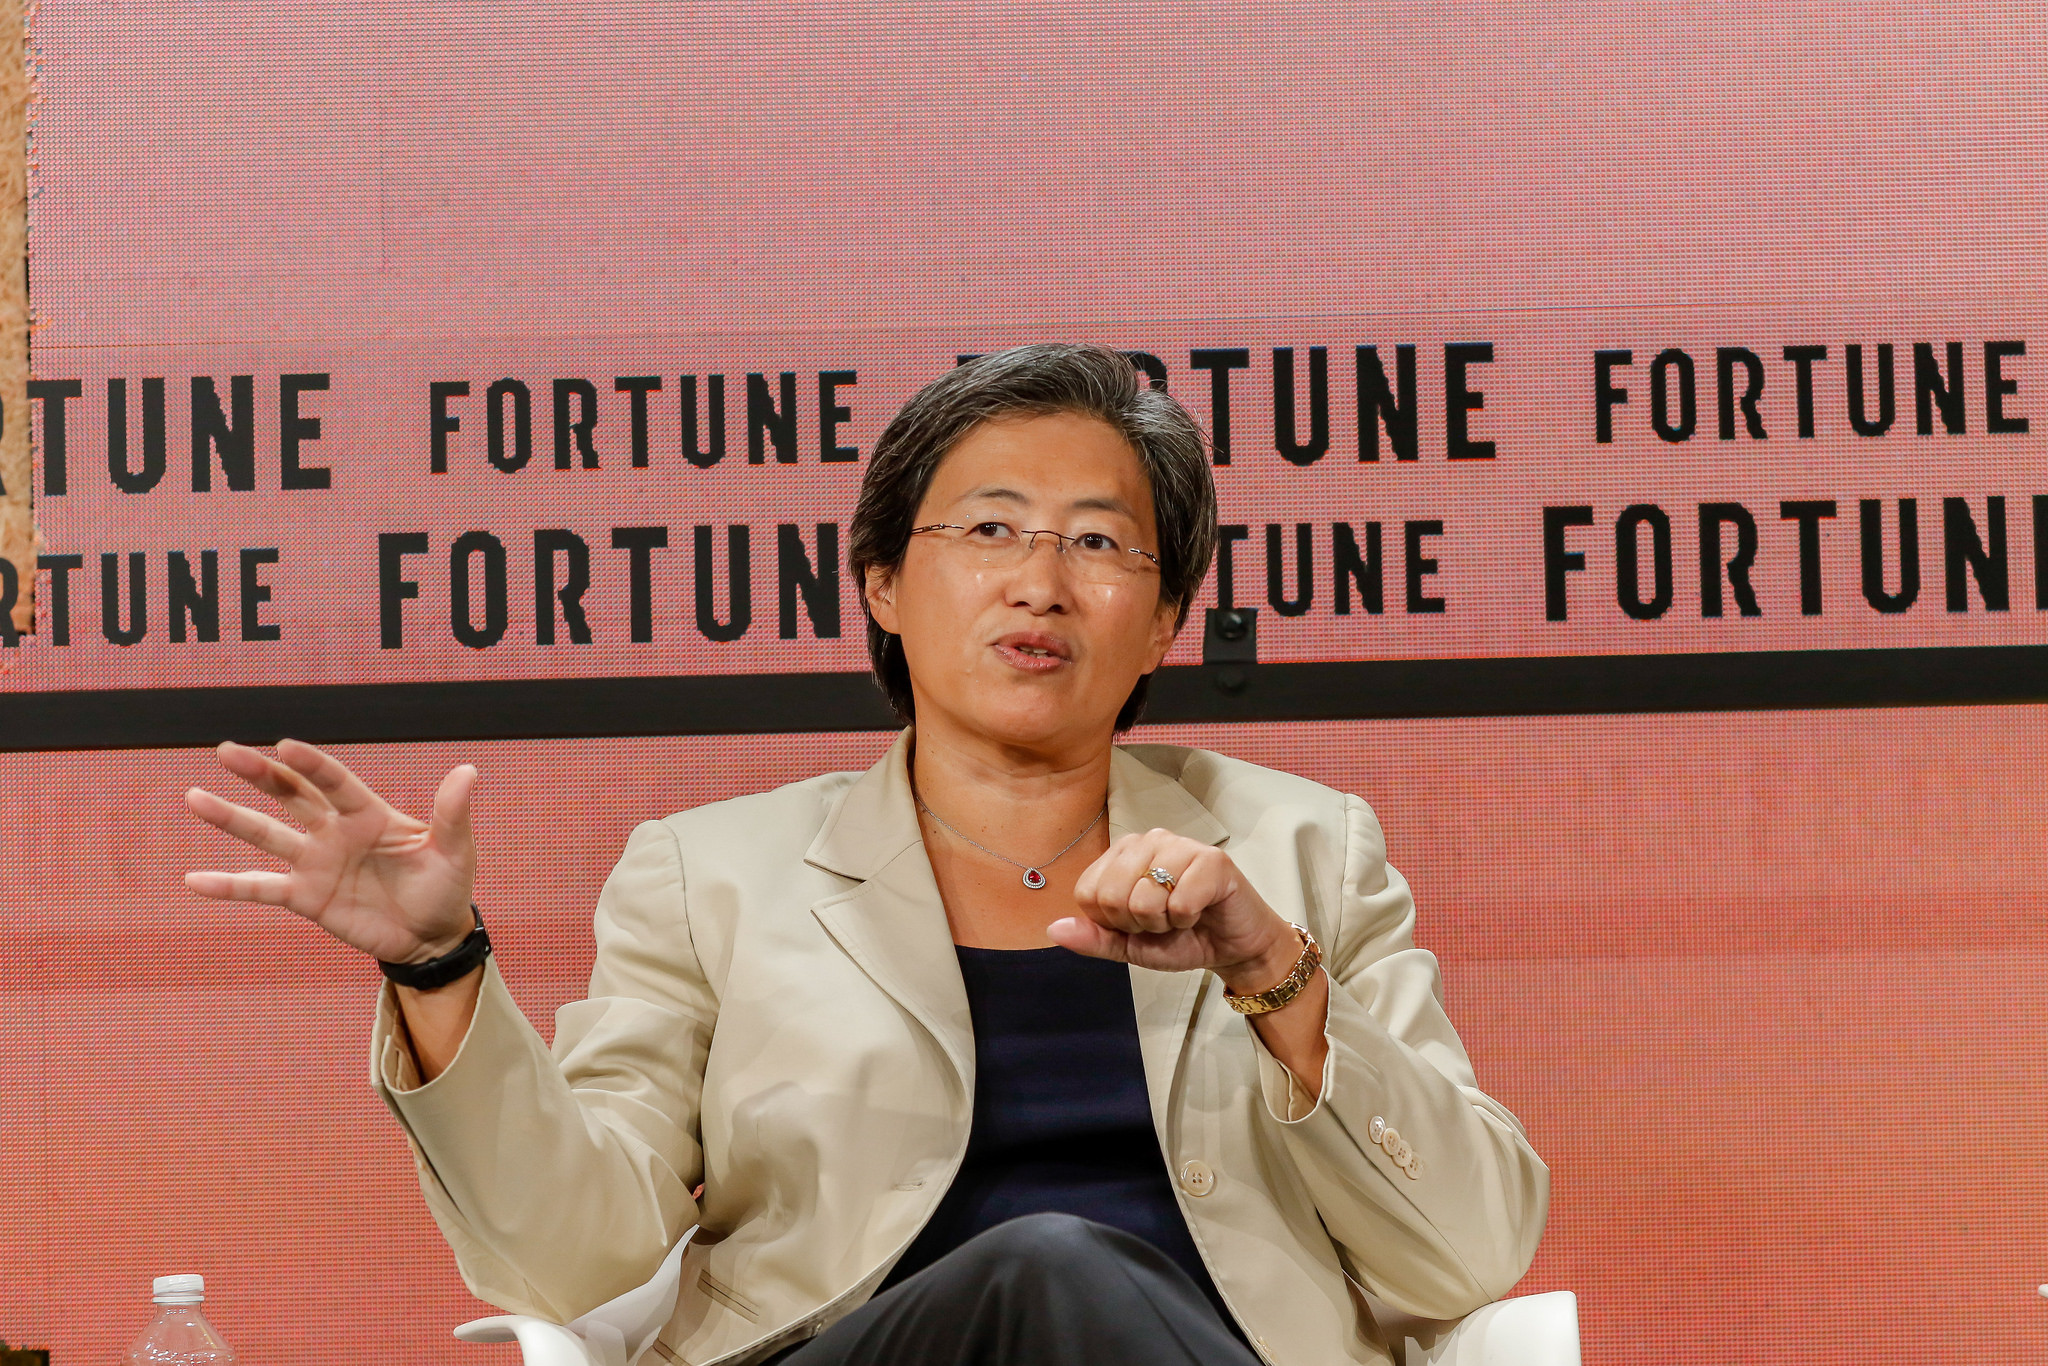 AMD CEO Lisa Su speaking at the 2018 Fortune Brainstorm Tech conference in Aspen.